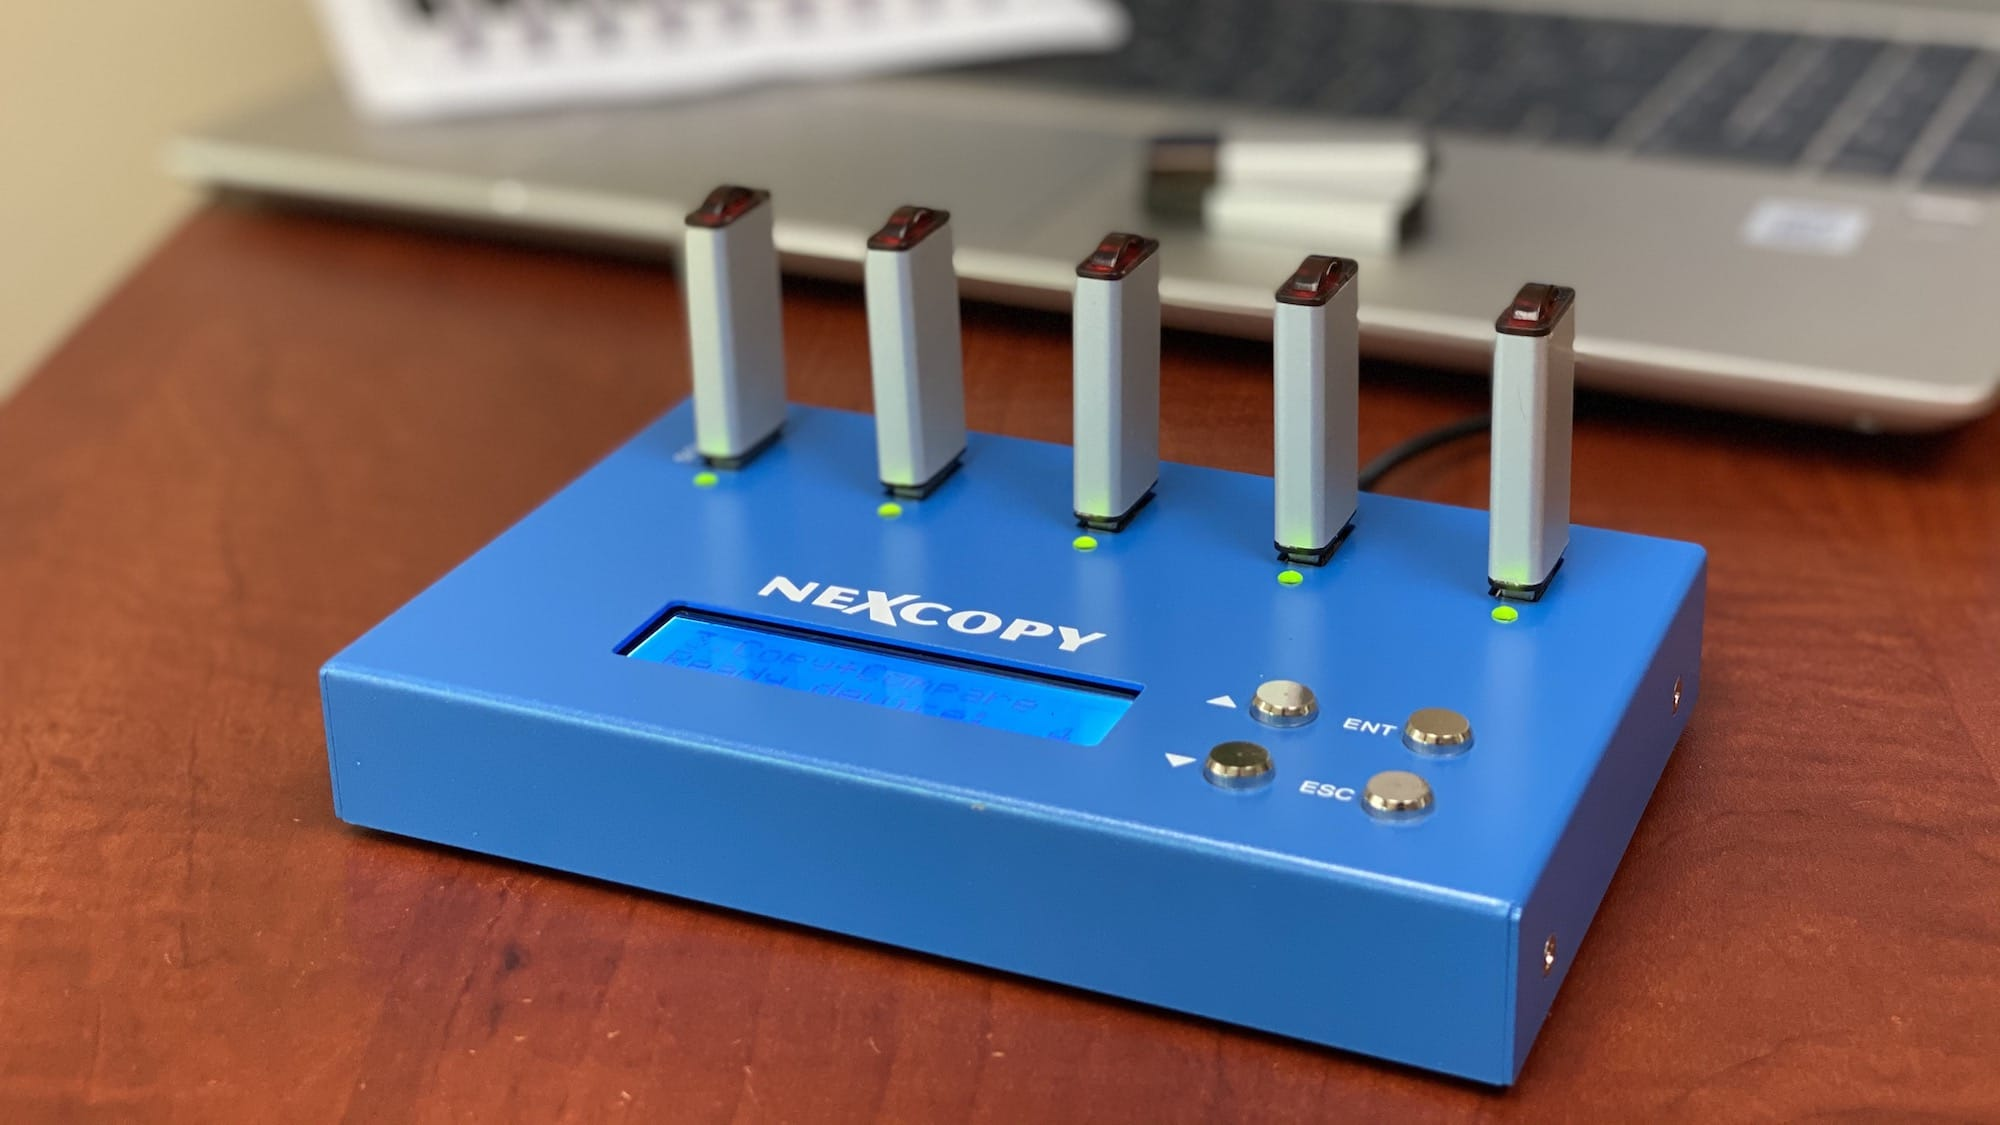 Nexcopy USB104SA standalone USB duplicator copies 1 GB of data in less than a minute